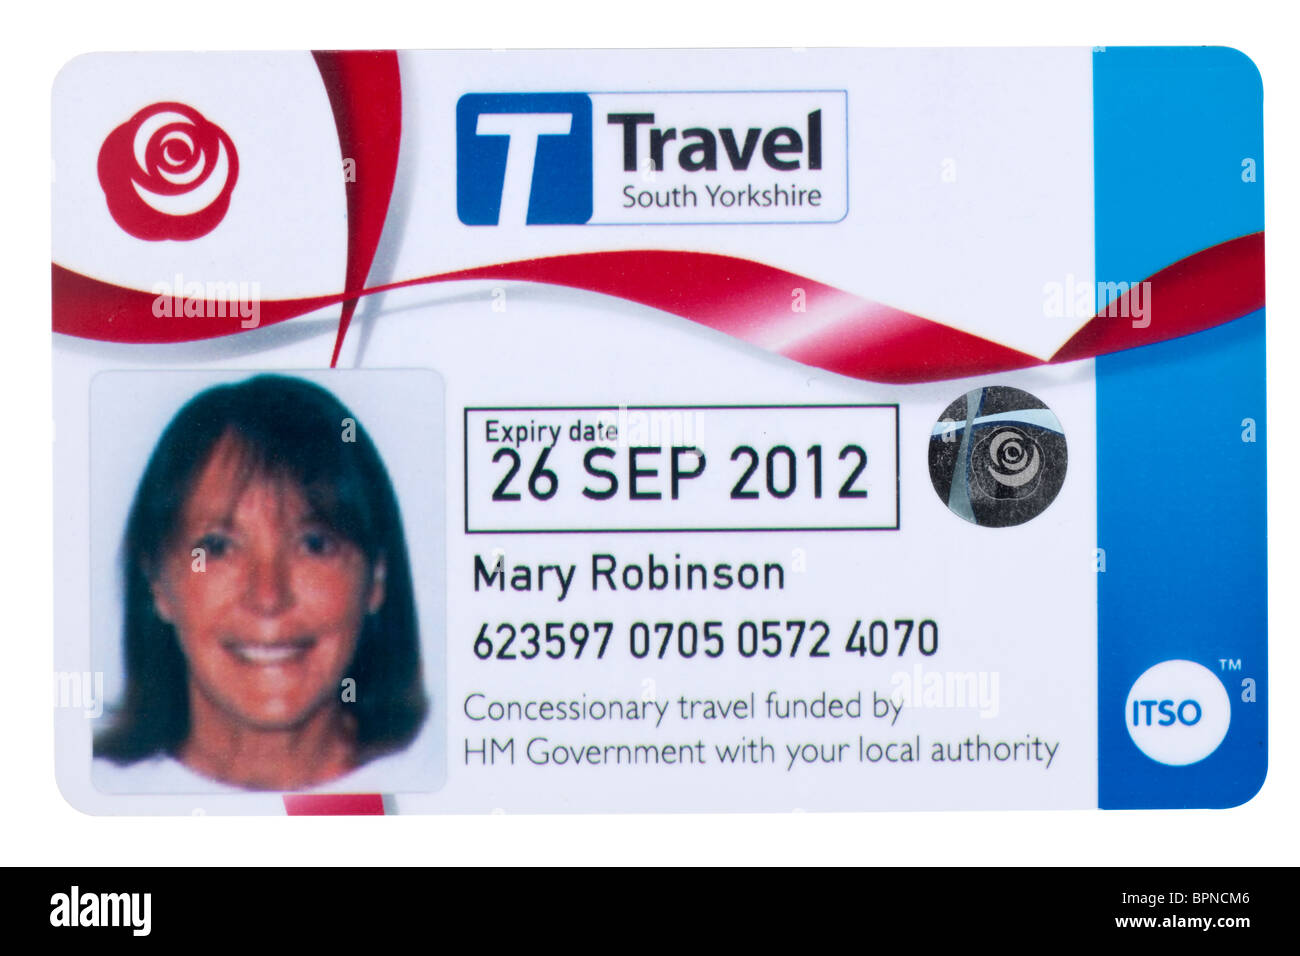 Senior citizens concessionary Travel South Yorkshire bus travel pass model released - Stock Image